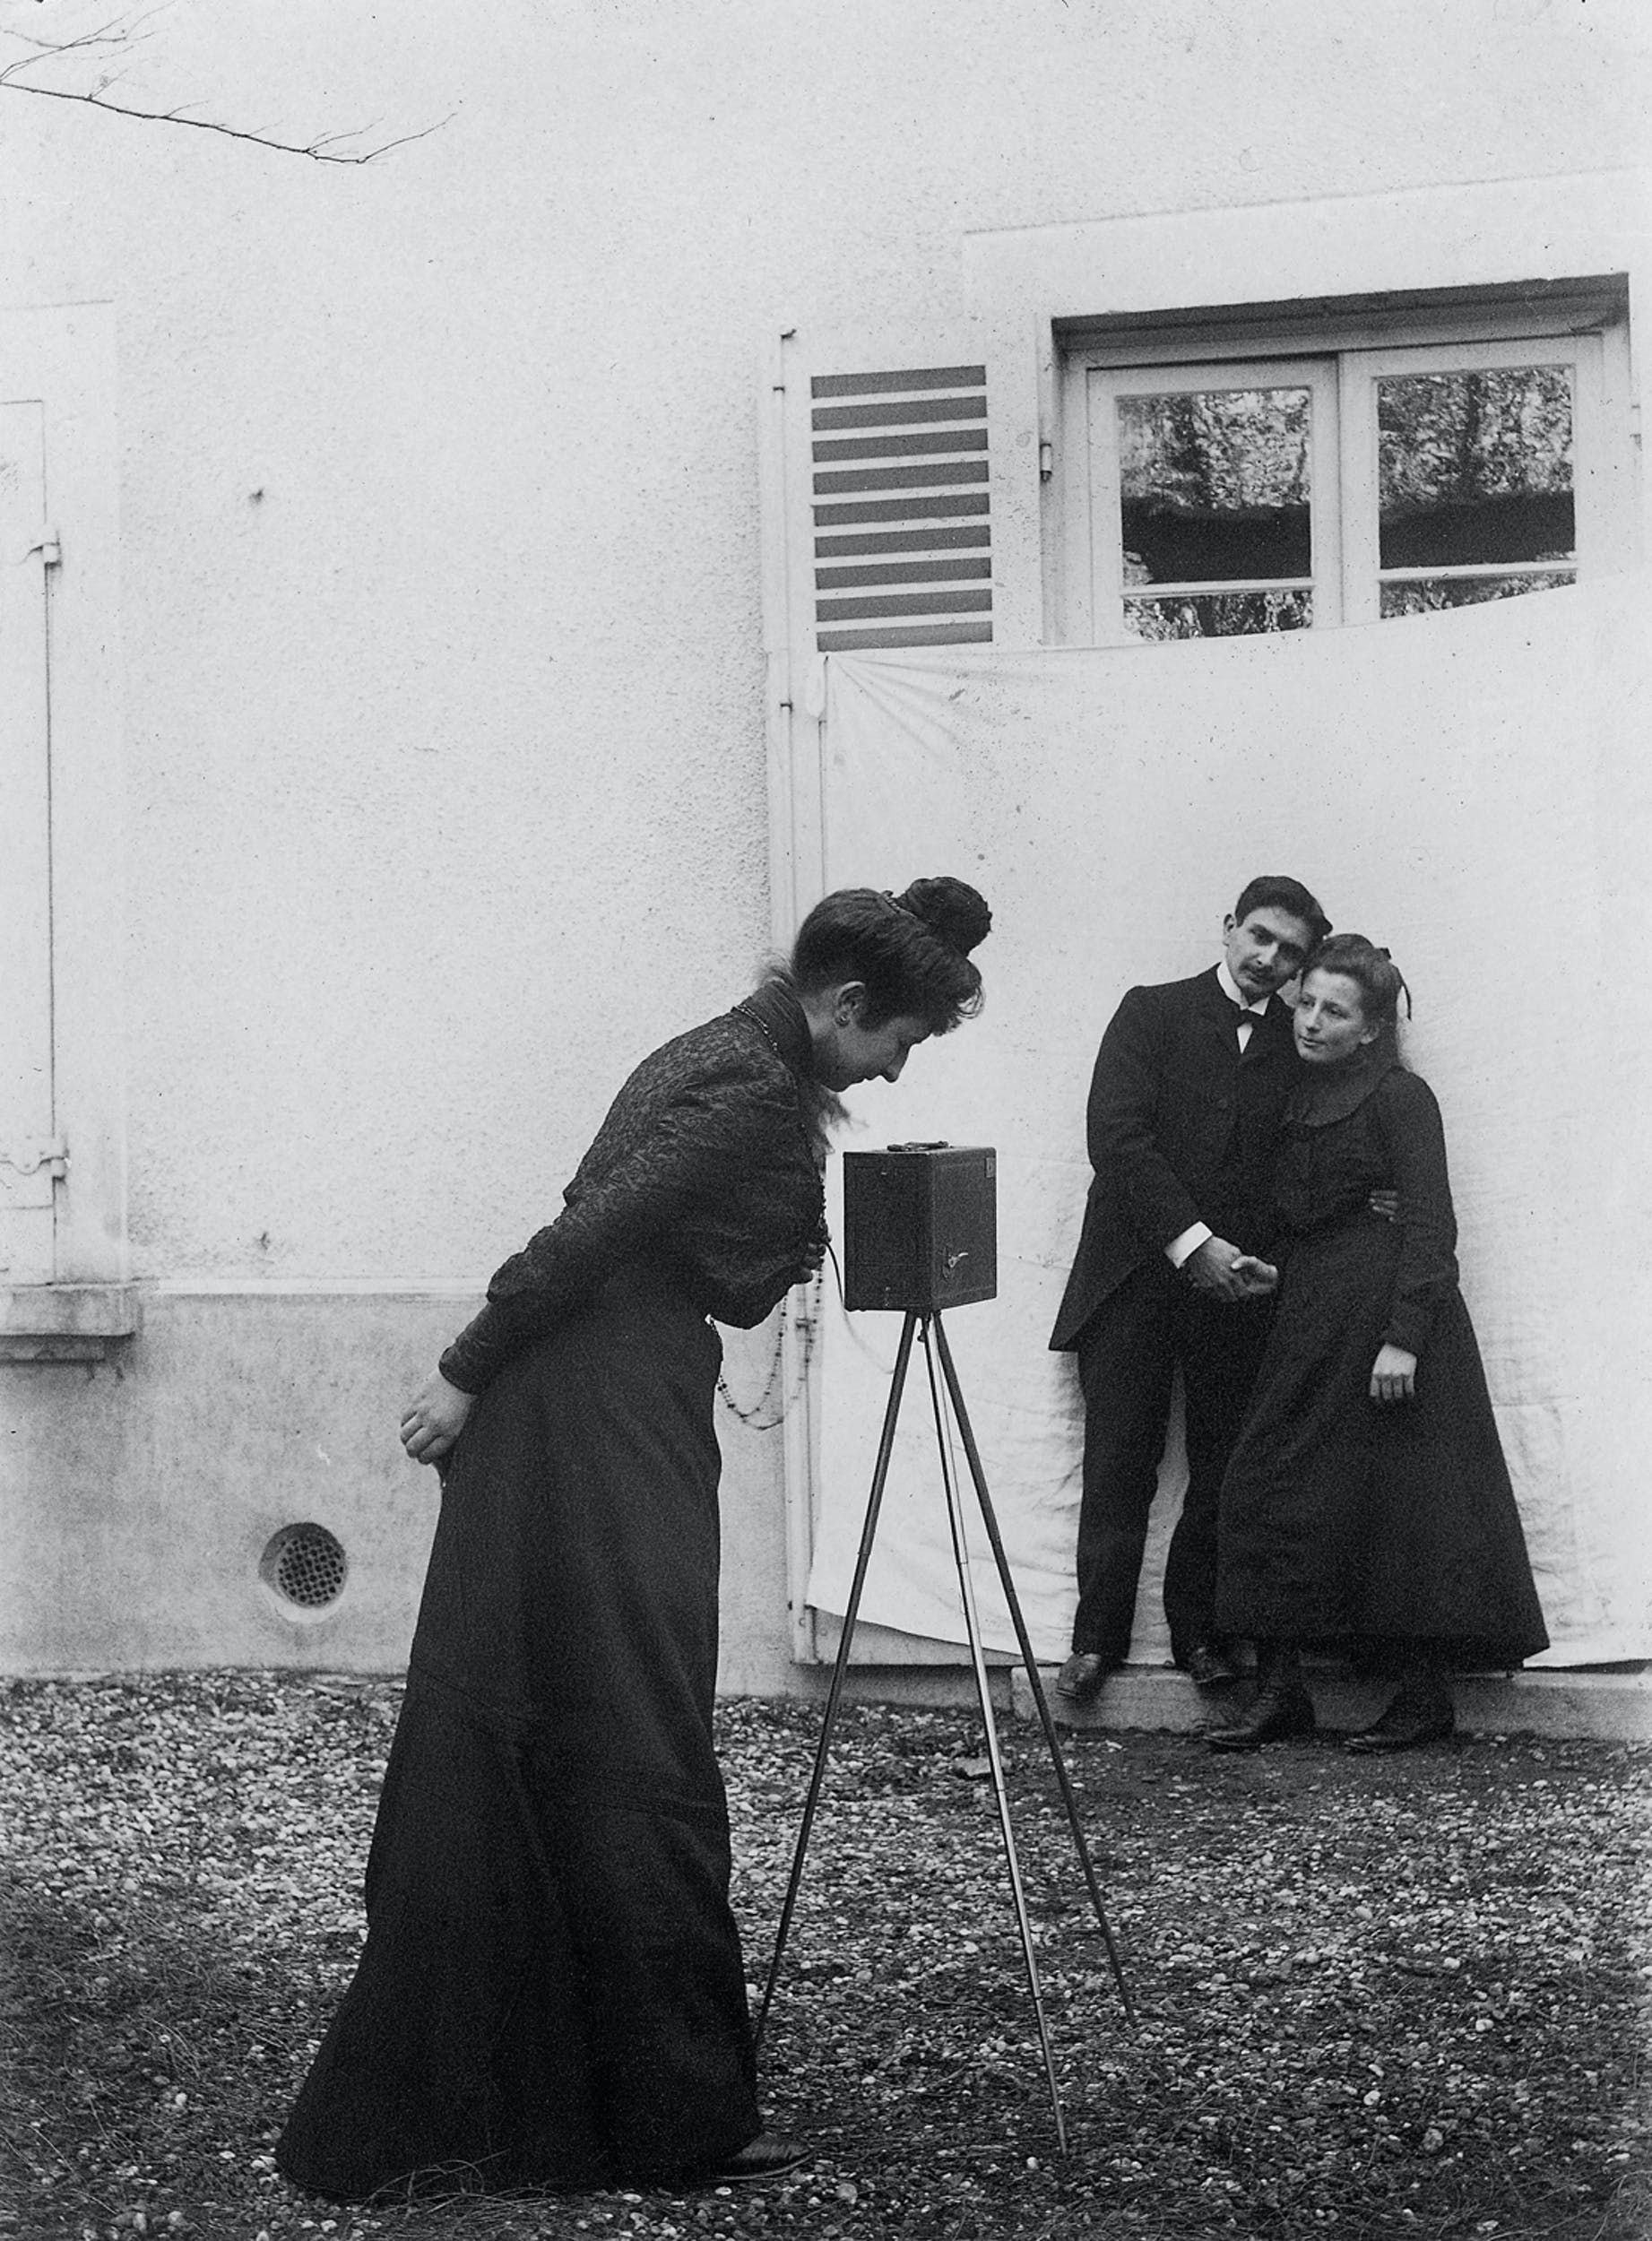 Autore non identificato Fotografa che guarda l'inquadratura, mentre ritrae una giovane coppia 1902 fotografia Collezione Favrod, Raccolte museali Fratelli Alinari, Firenze I Unidentified photographer  Woman photographing a young couple 1902 photograph Favrod Collection, Raccolte museali Fratelli Alinari, Florence